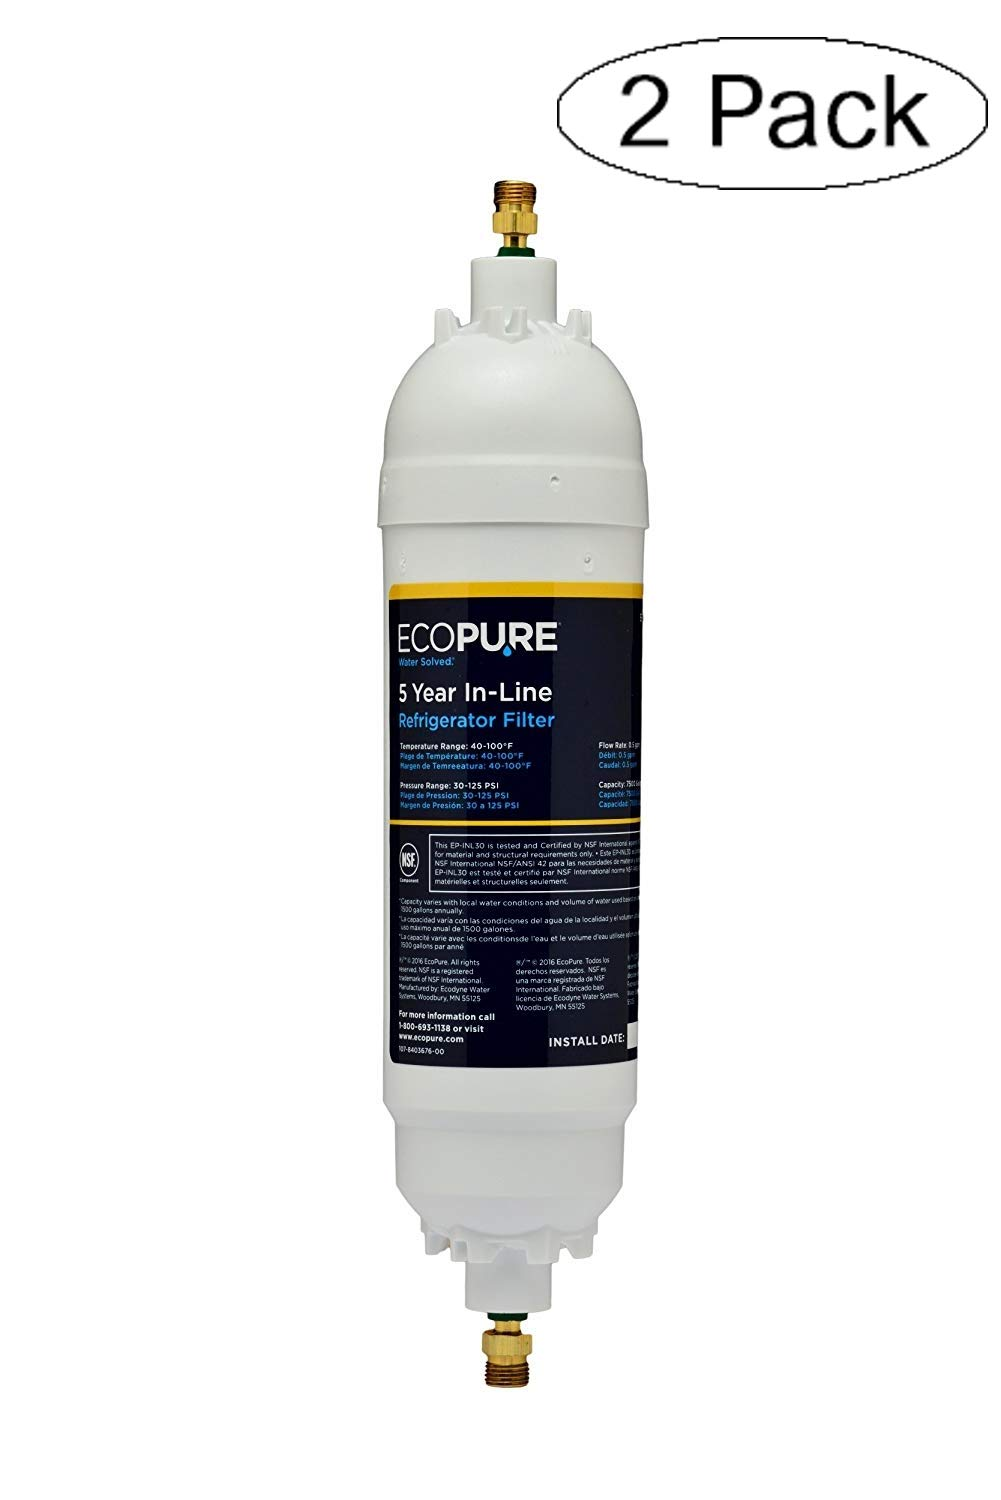 """EcoPure EPINL30 5 Year in-Line Refrigerator Filter-Universal Includes Both 1/4"""" Compression and Push to Connect Fittings (Twо Расk)"""